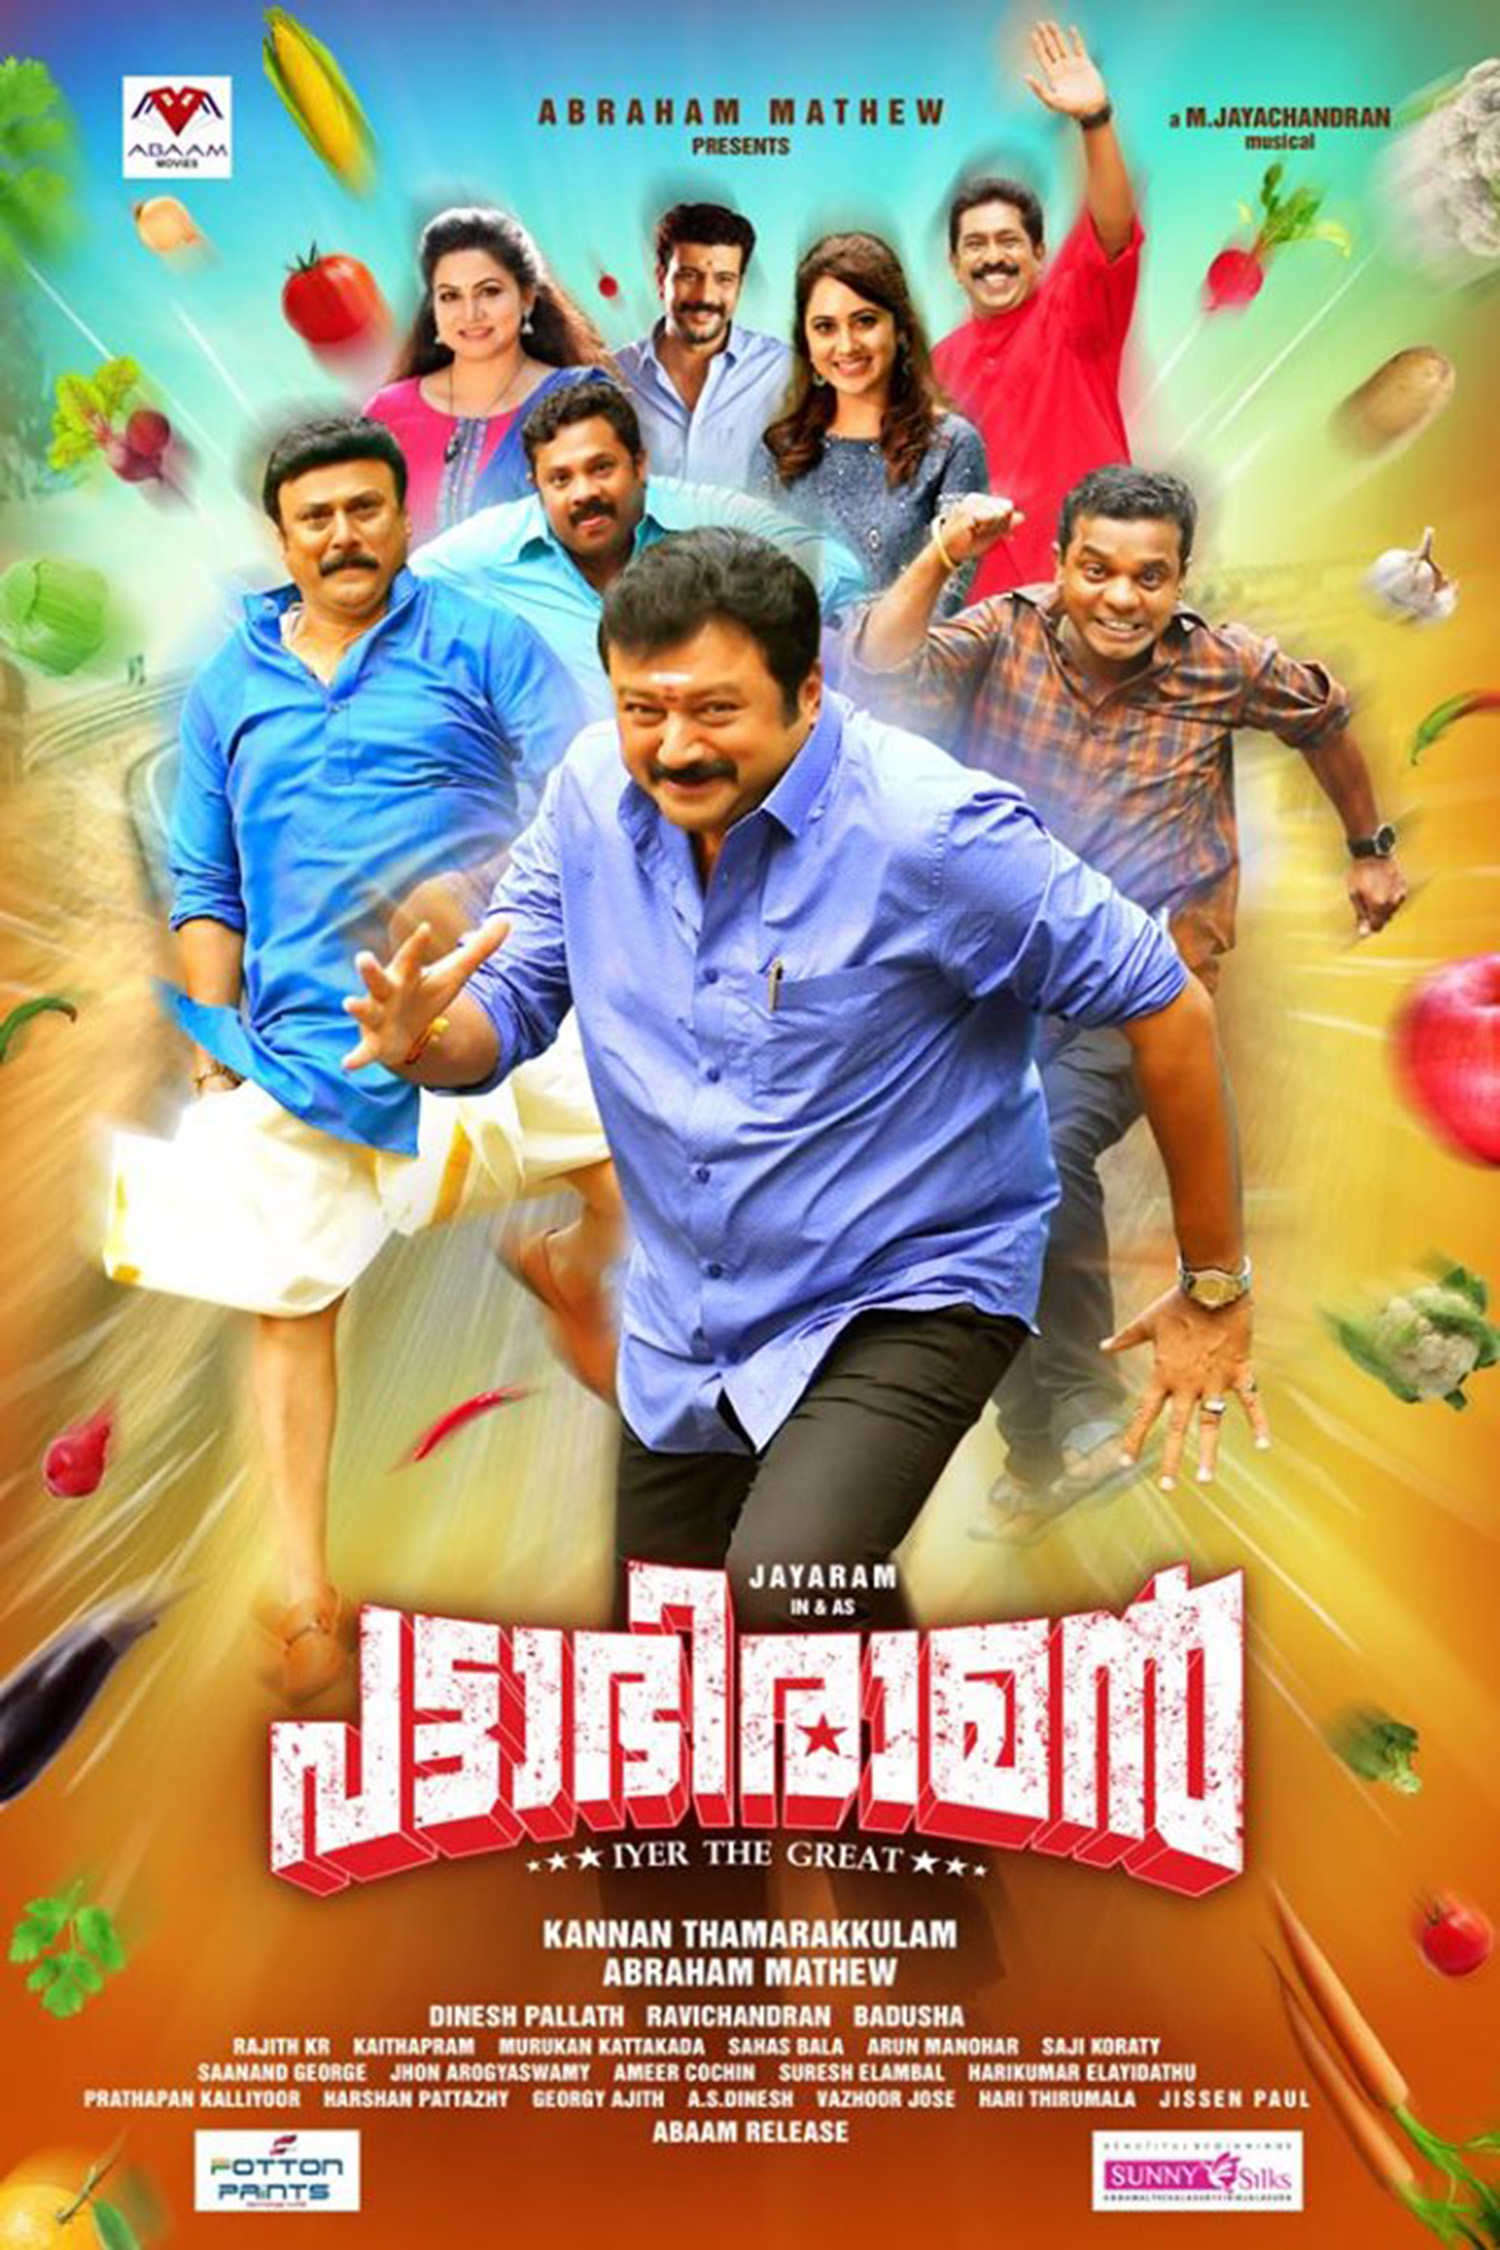 Pattabhiraman, Pattabhiraman first look poster, Pattabhiraman poster,jayaram,jayaram new movie,jayaram's  Pattabhiraman first look poster,kannan thamarakkulam,jayaram kannan thamarakkulam new movie